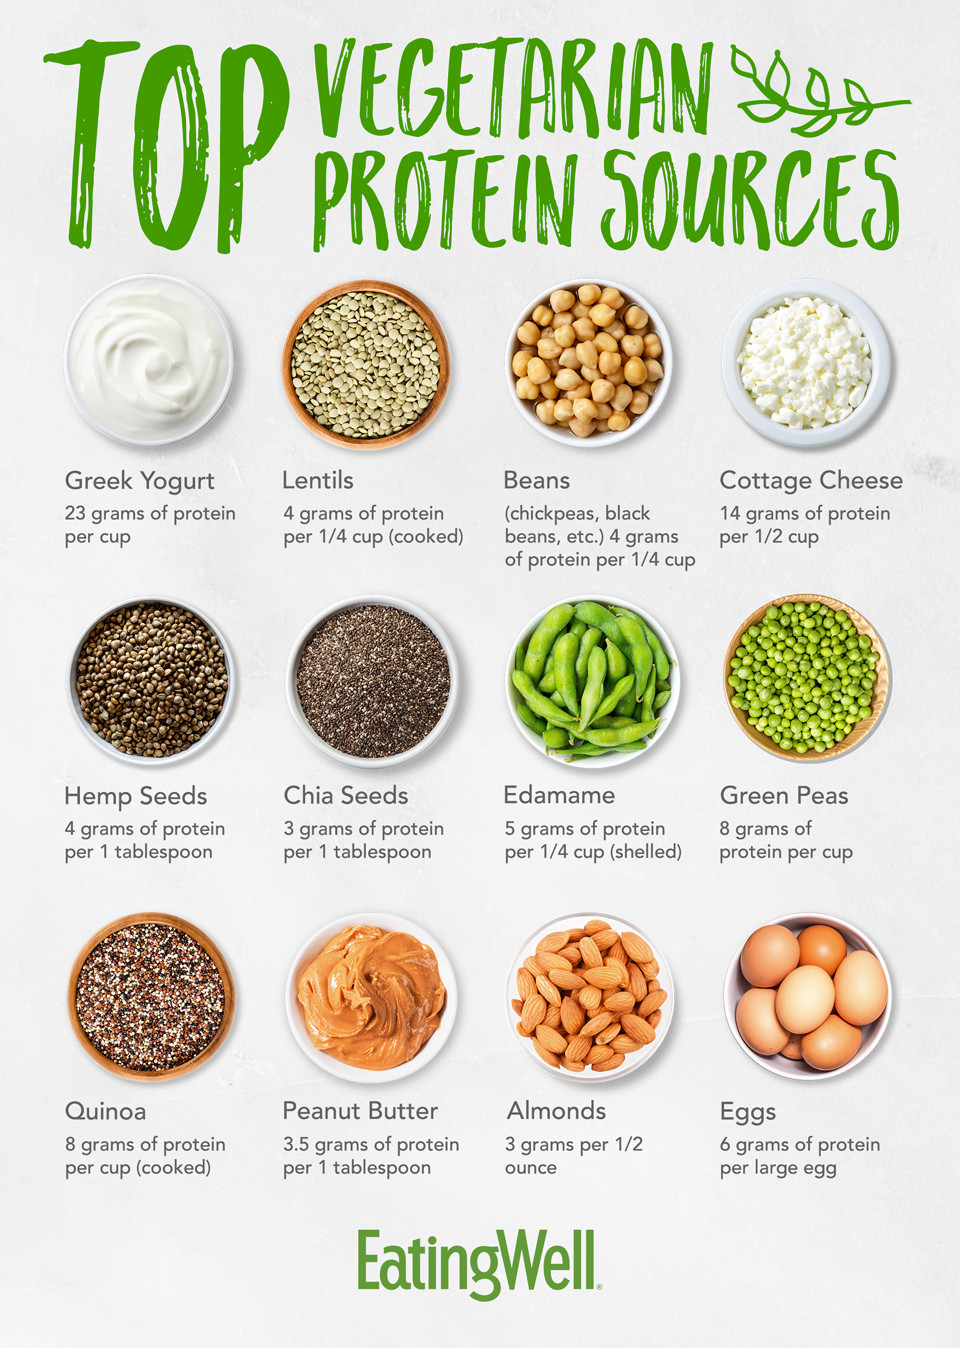 Protein Food For Vegetarian  Top Ve arian Protein Sources EatingWell